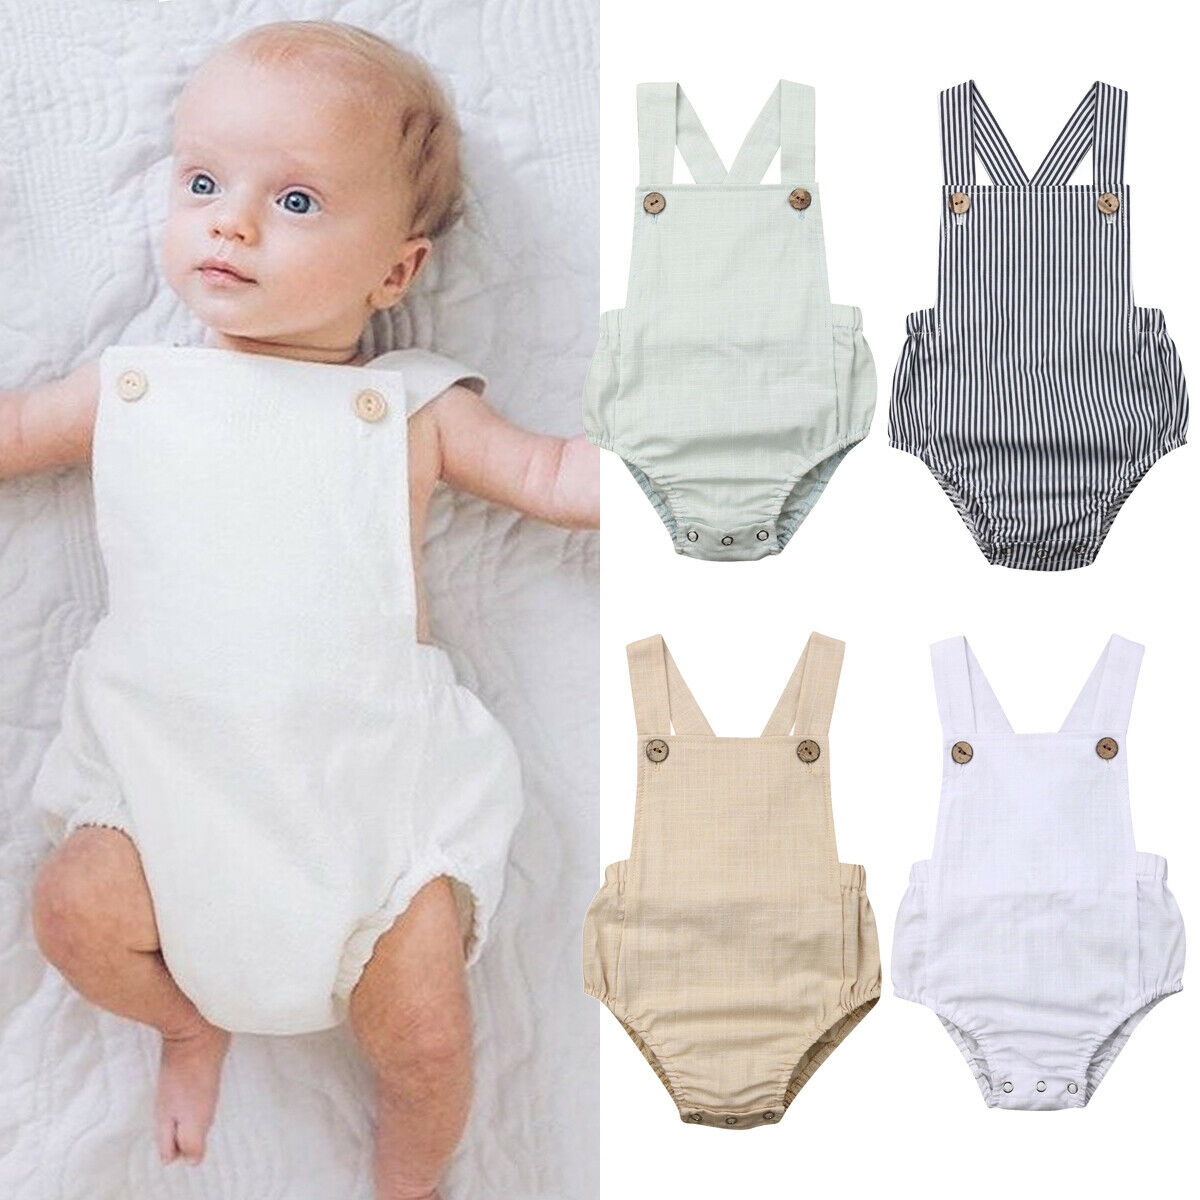 a47b36508 Pudcoco 2019 Summer Newborn Infant Baby Girl Strap Bodysuit Summer Jumpsuit  Sunsuit Outfits Cute Clothes